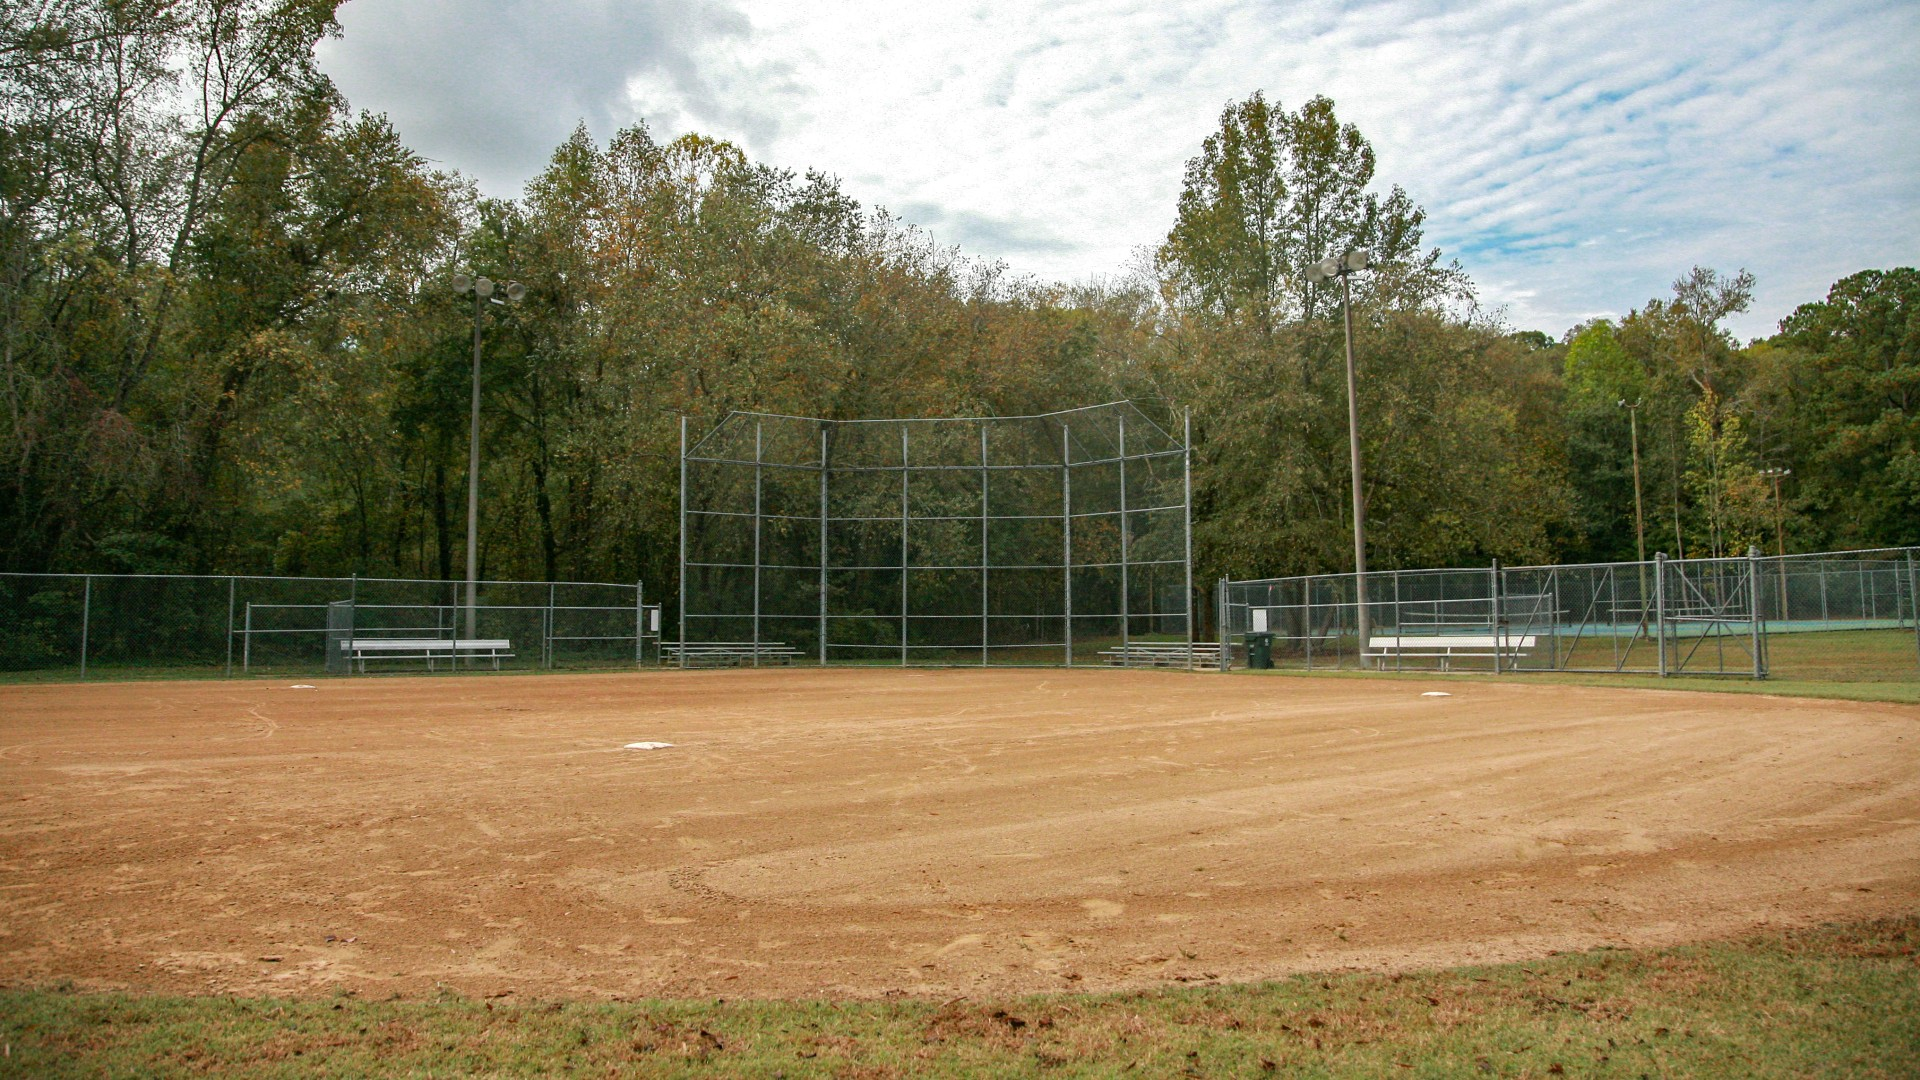 An open youth baseball field located near the tennis courts at Brentwood Park